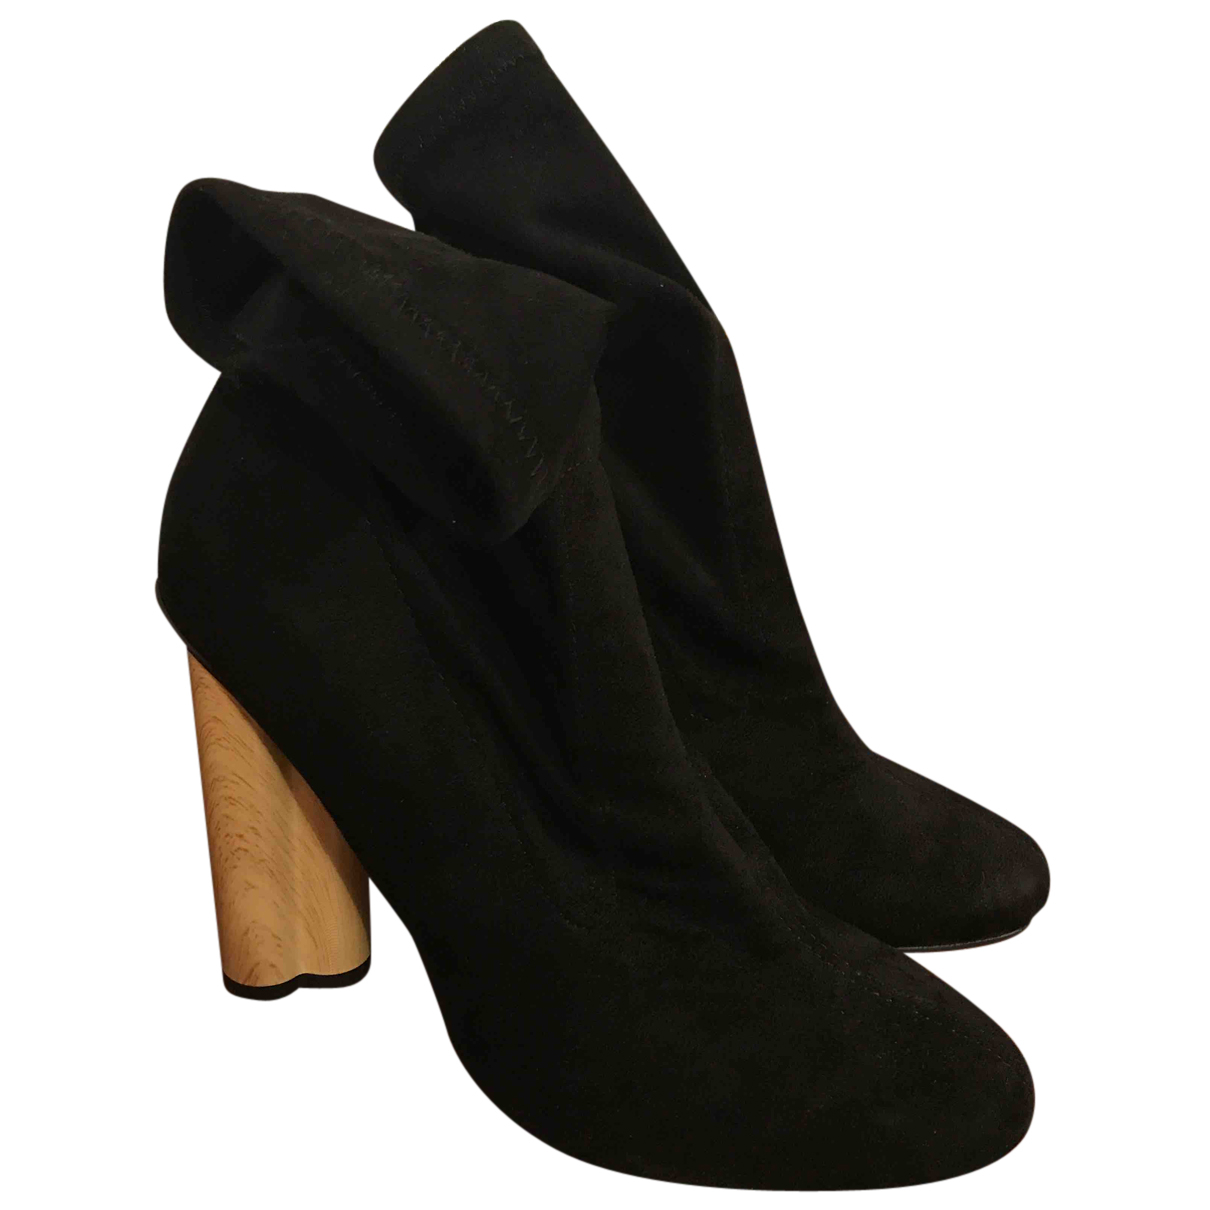 Asos N Black Suede Ankle boots for Women 5 UK